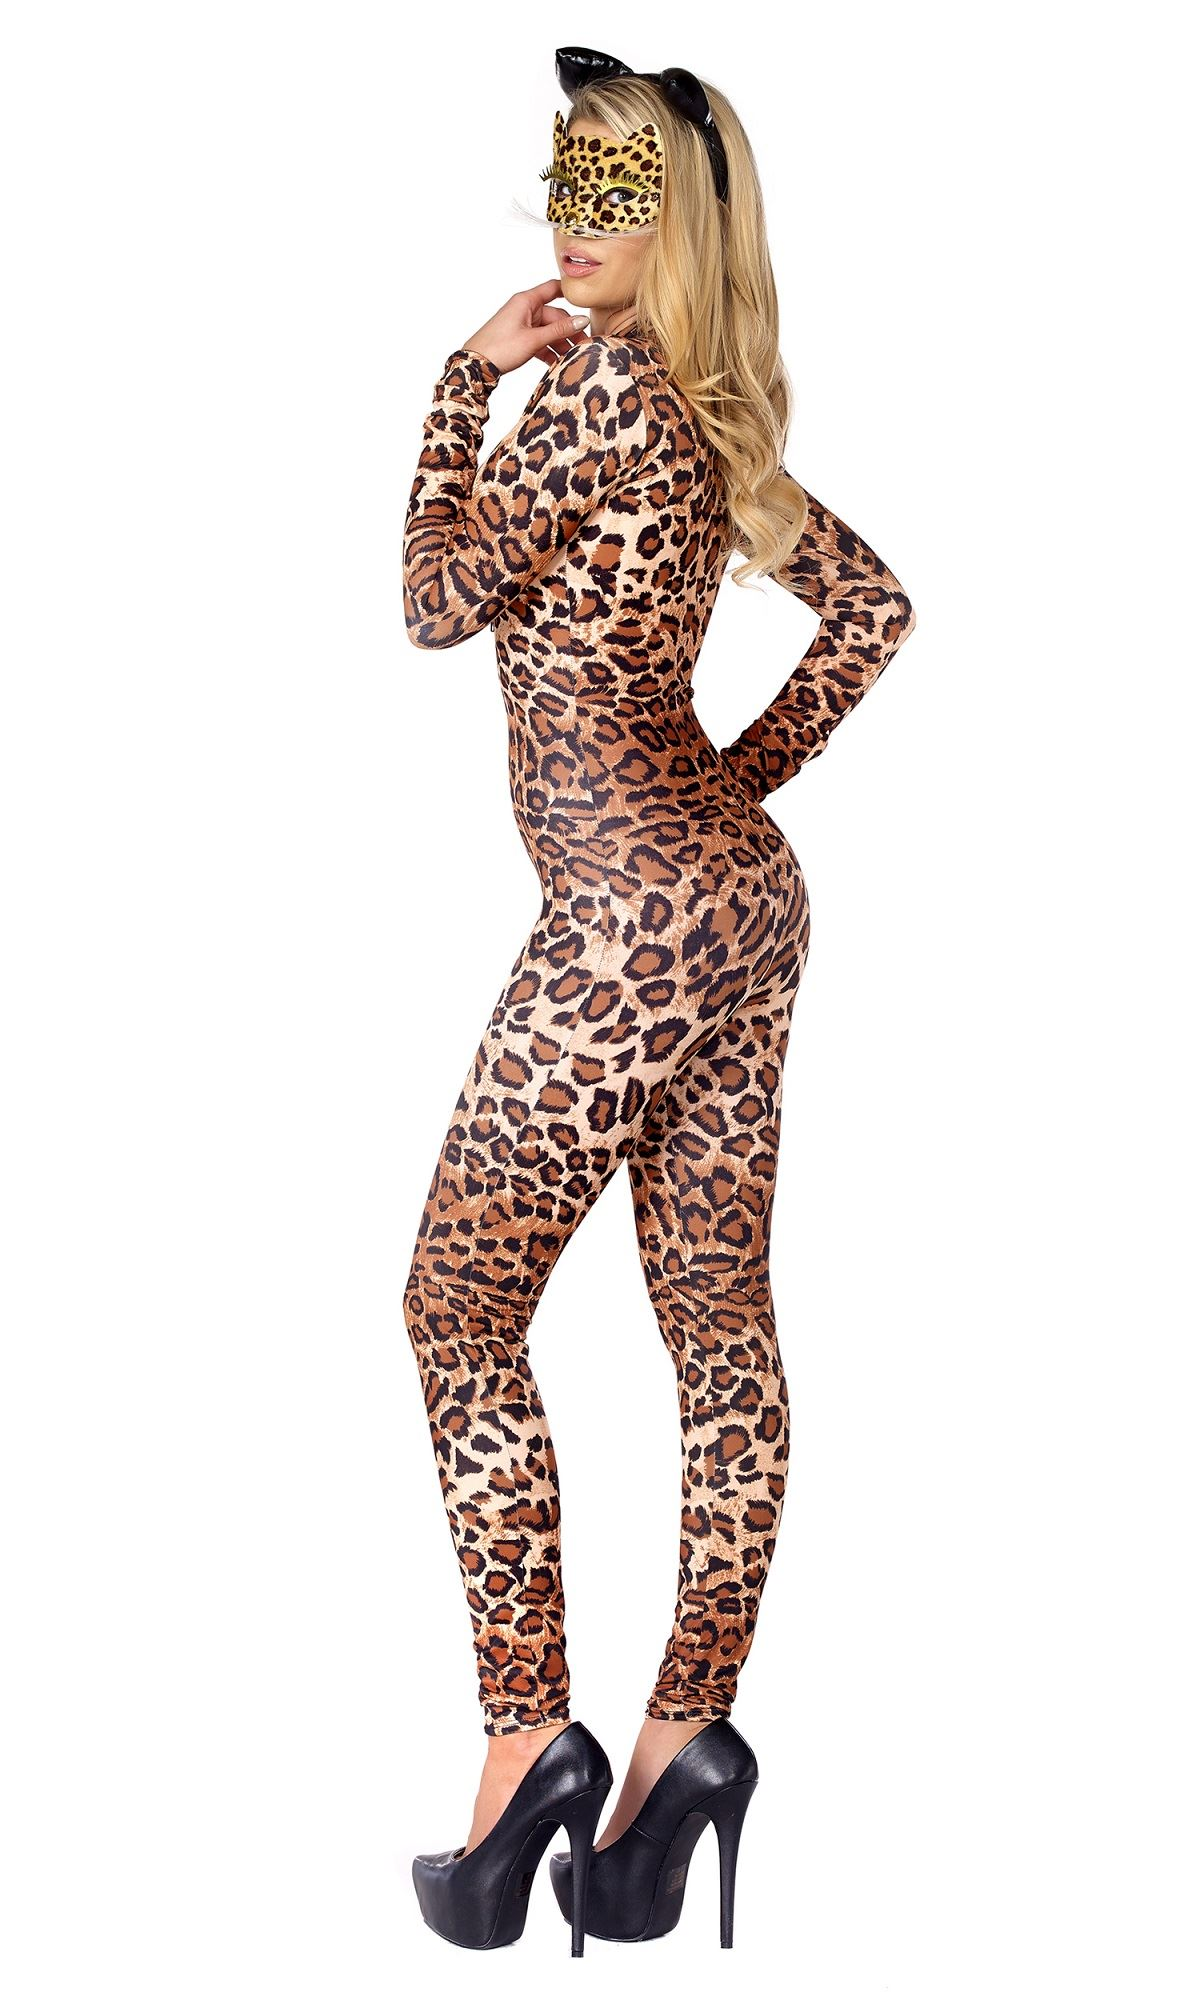 Find great deals on eBay for catsuit leopard. Shop with confidence.